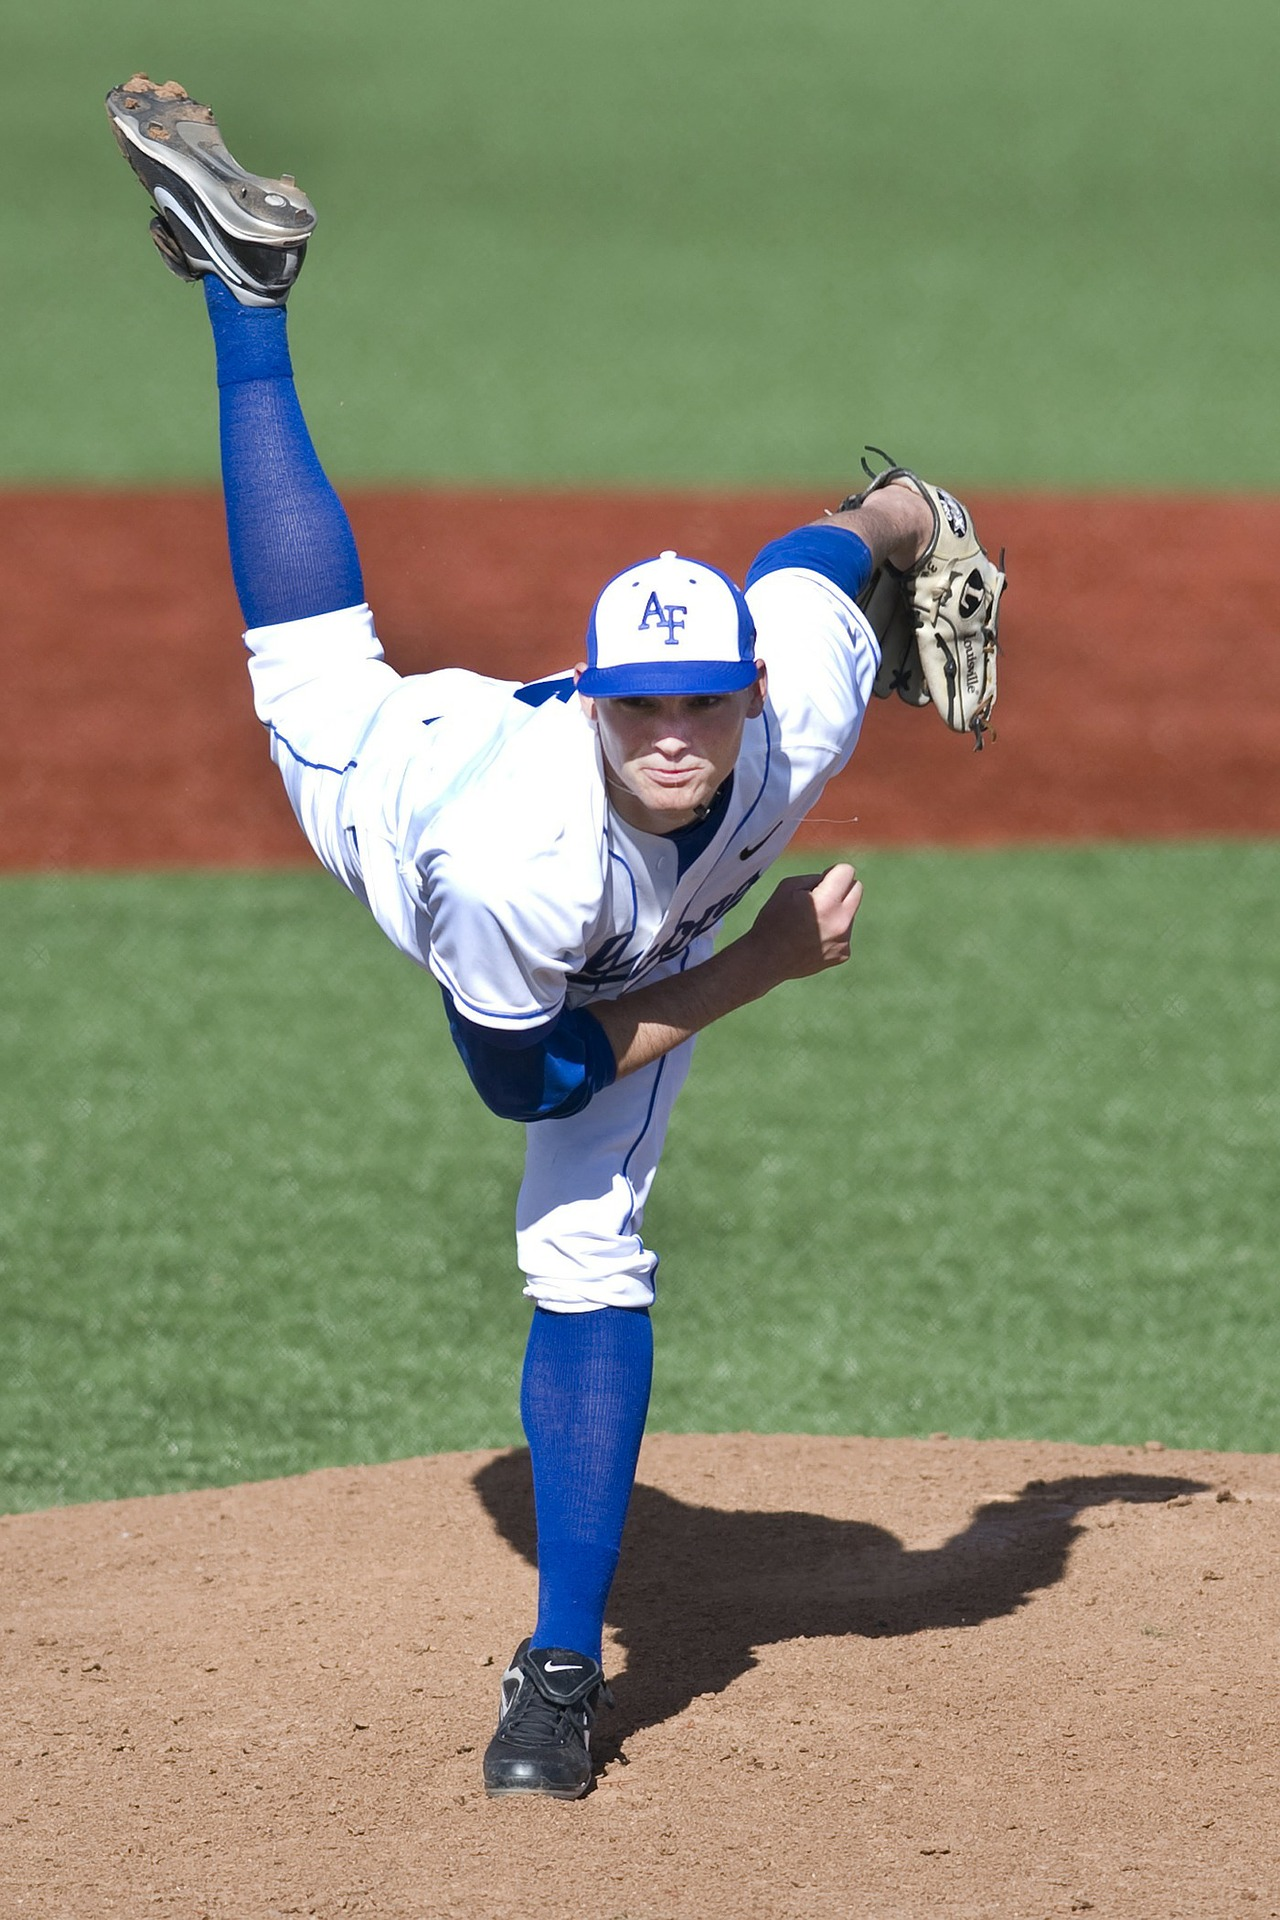 Notice the forward rotation of the throwing shoulder